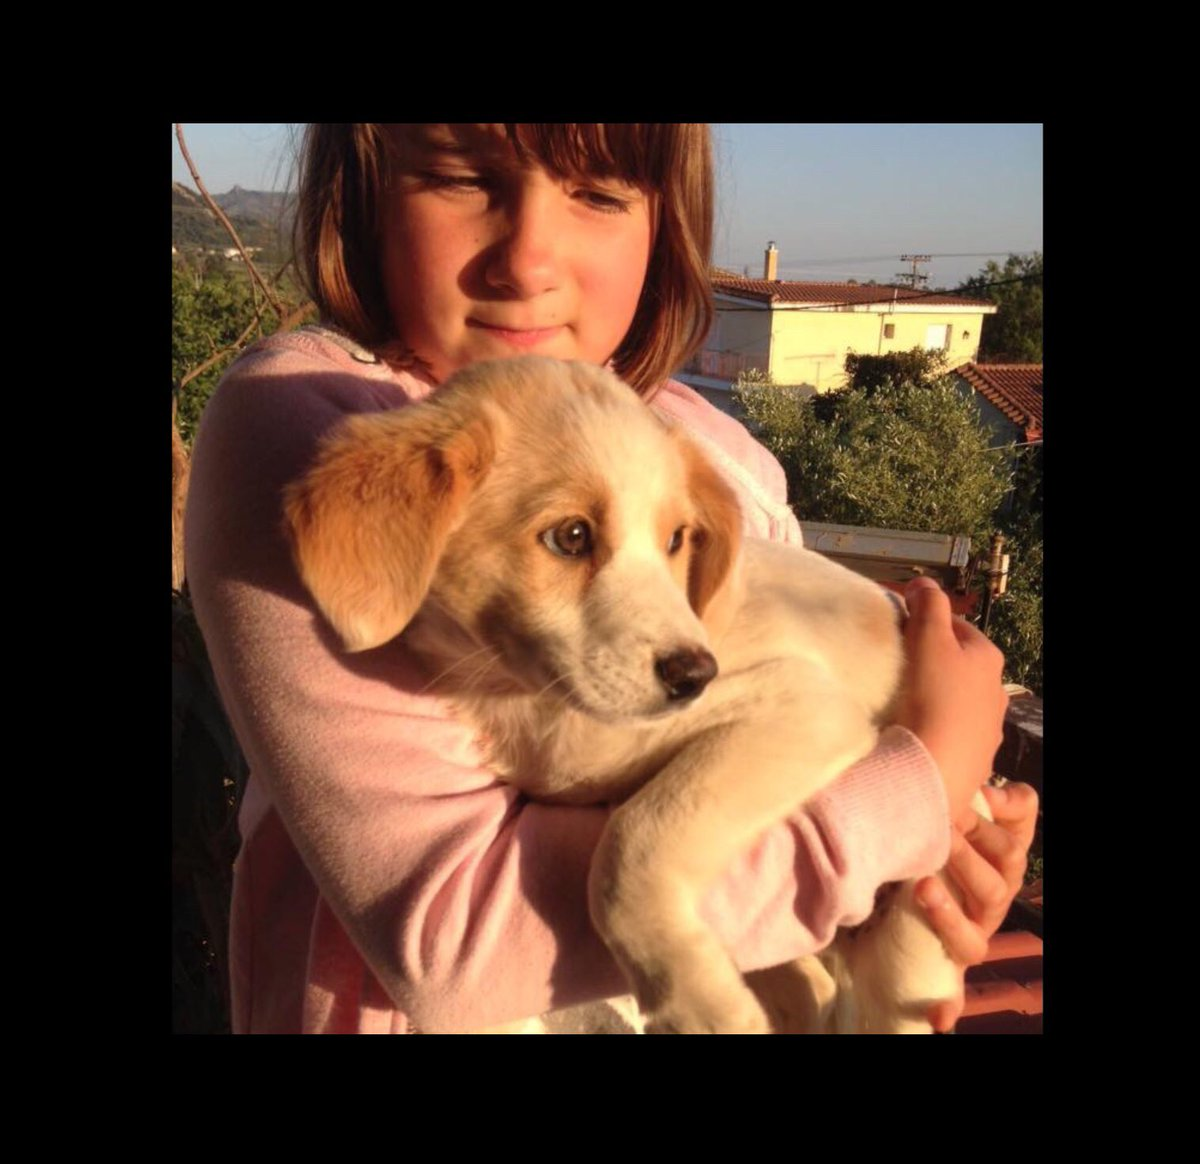 Hit &amp; left by a car, we were #grateful to find sweet Harry in time to help him! See how sad he was at first. He loves dogs, adults &amp; kids-he's even friends with cats. Could you love &amp; care for another #cute family member?  #ADOPT in #UK #Germany #NL  #AdoptDontShop #puppylove <br>http://pic.twitter.com/8XlOhnM9DA